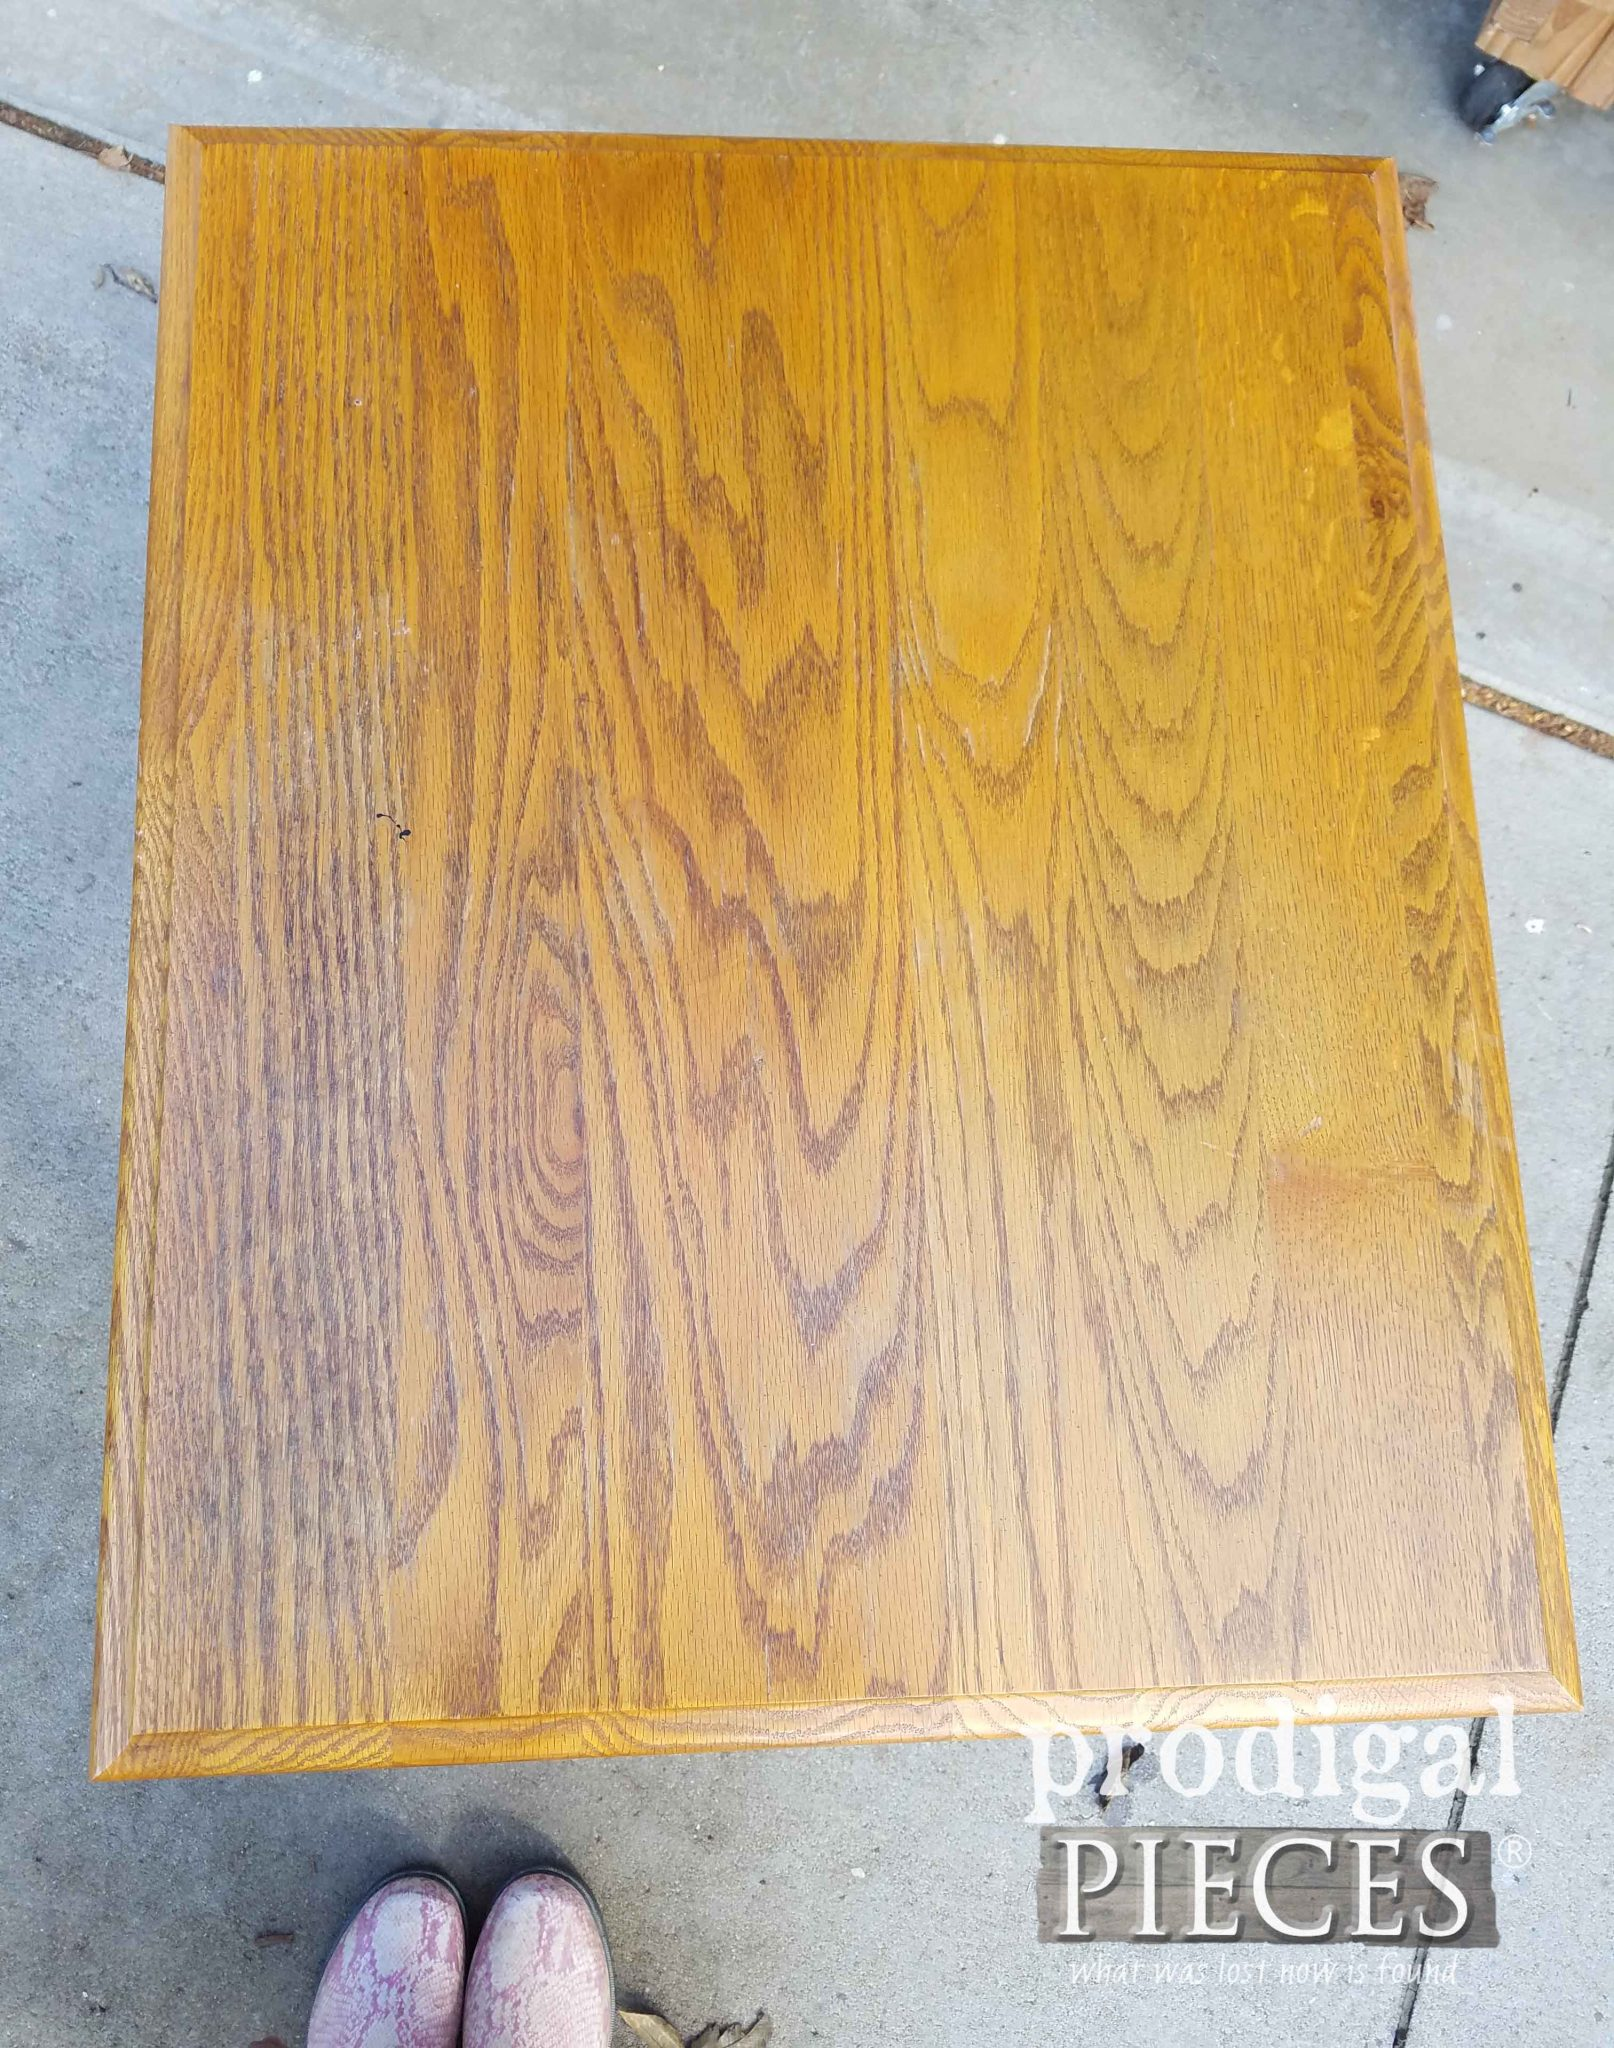 Worn Oak Table Top | prodigalpieces.com